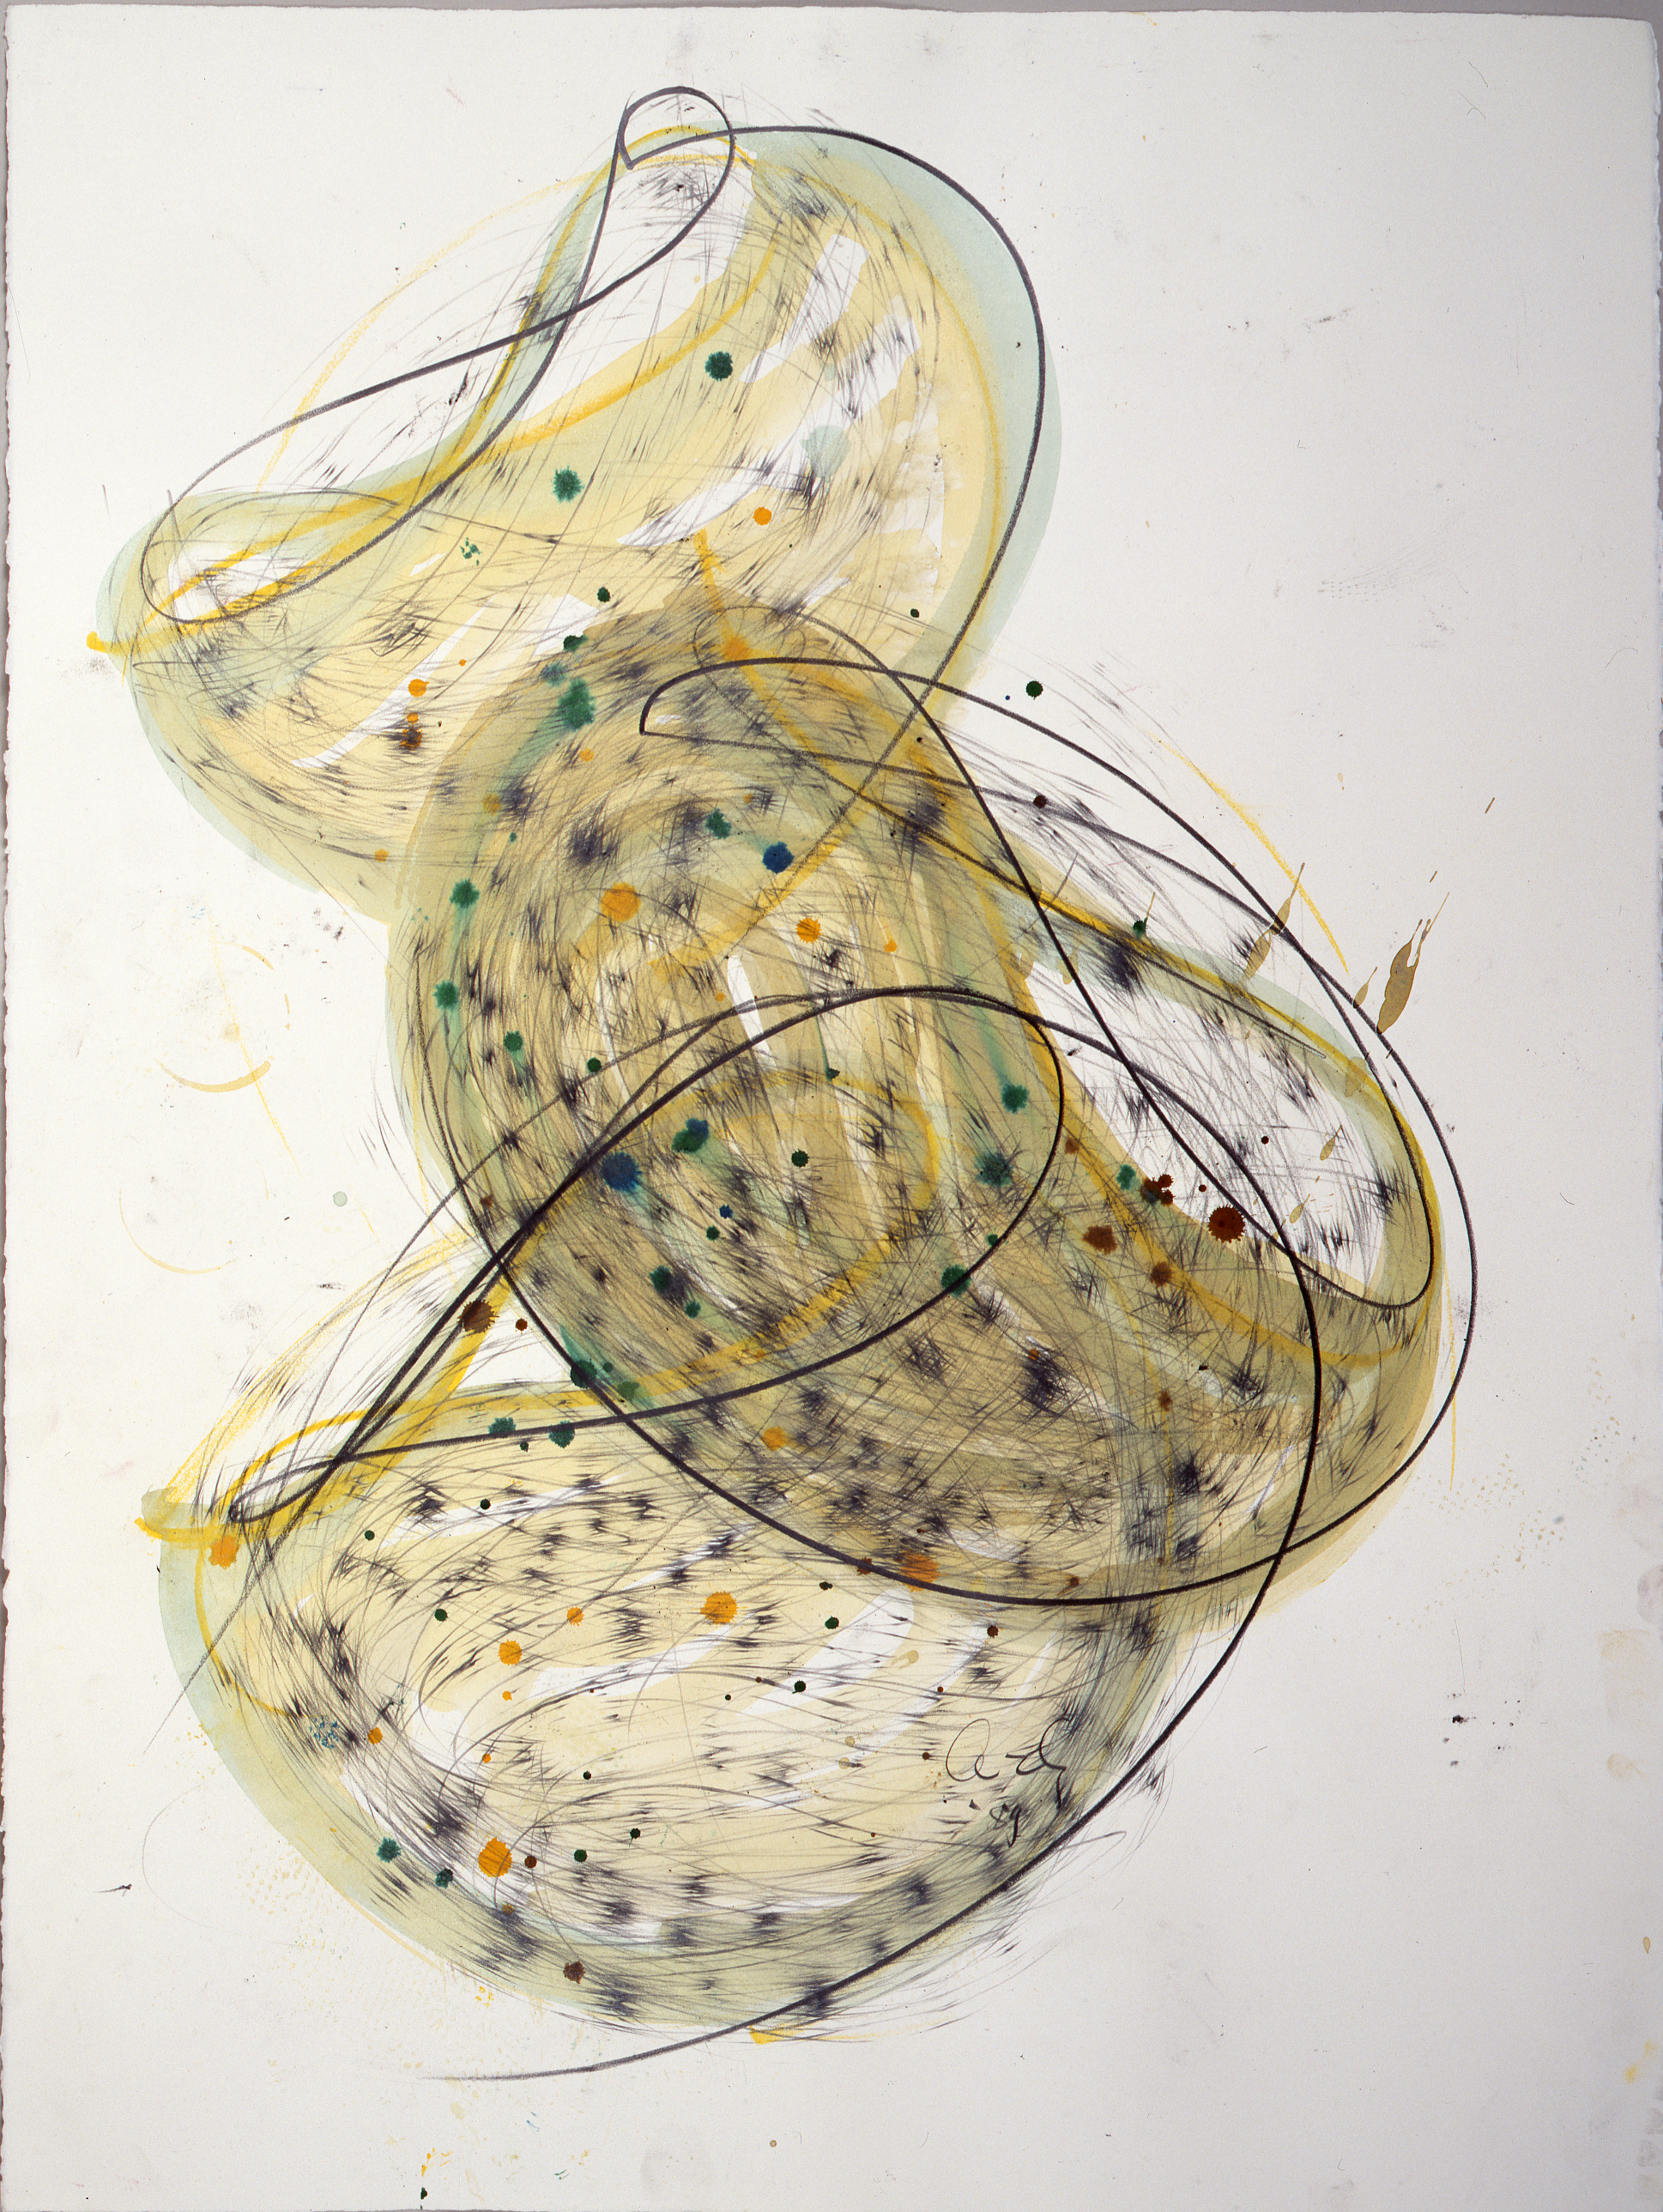 Dale Chihuly, Macchia Drawing #31, (1989, graphite, charcoal, and watercolor on paper, 30 x 22 inches), DC.86